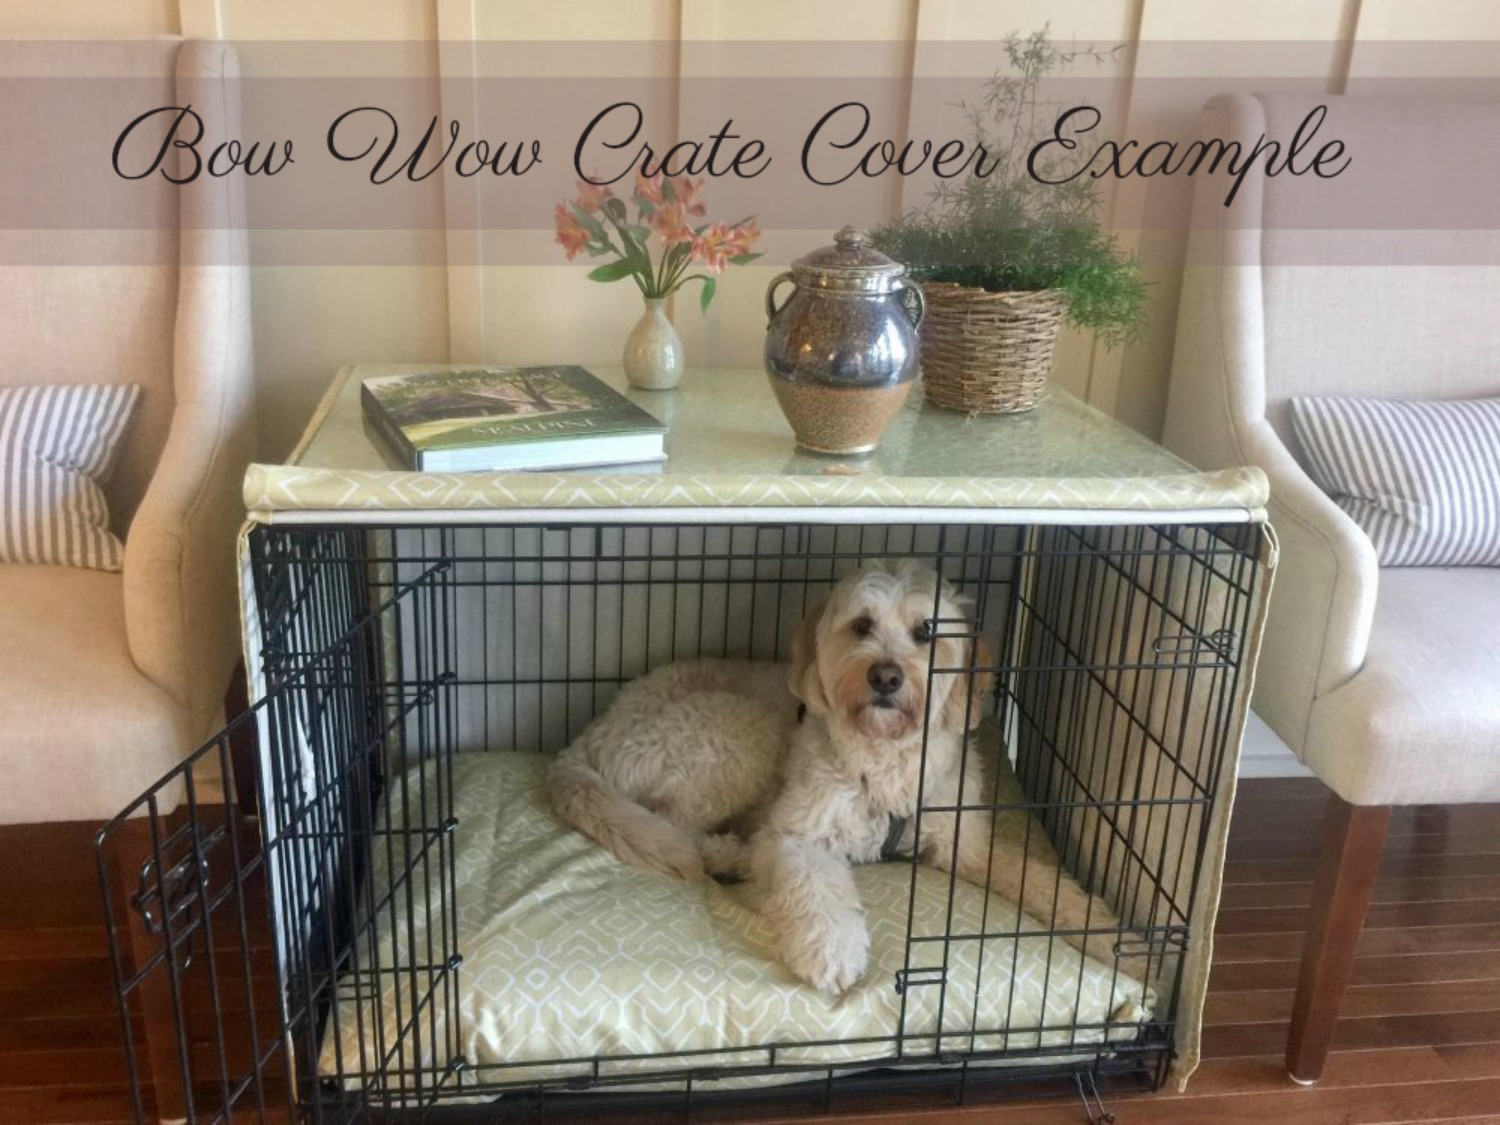 Canvas Crate Covers